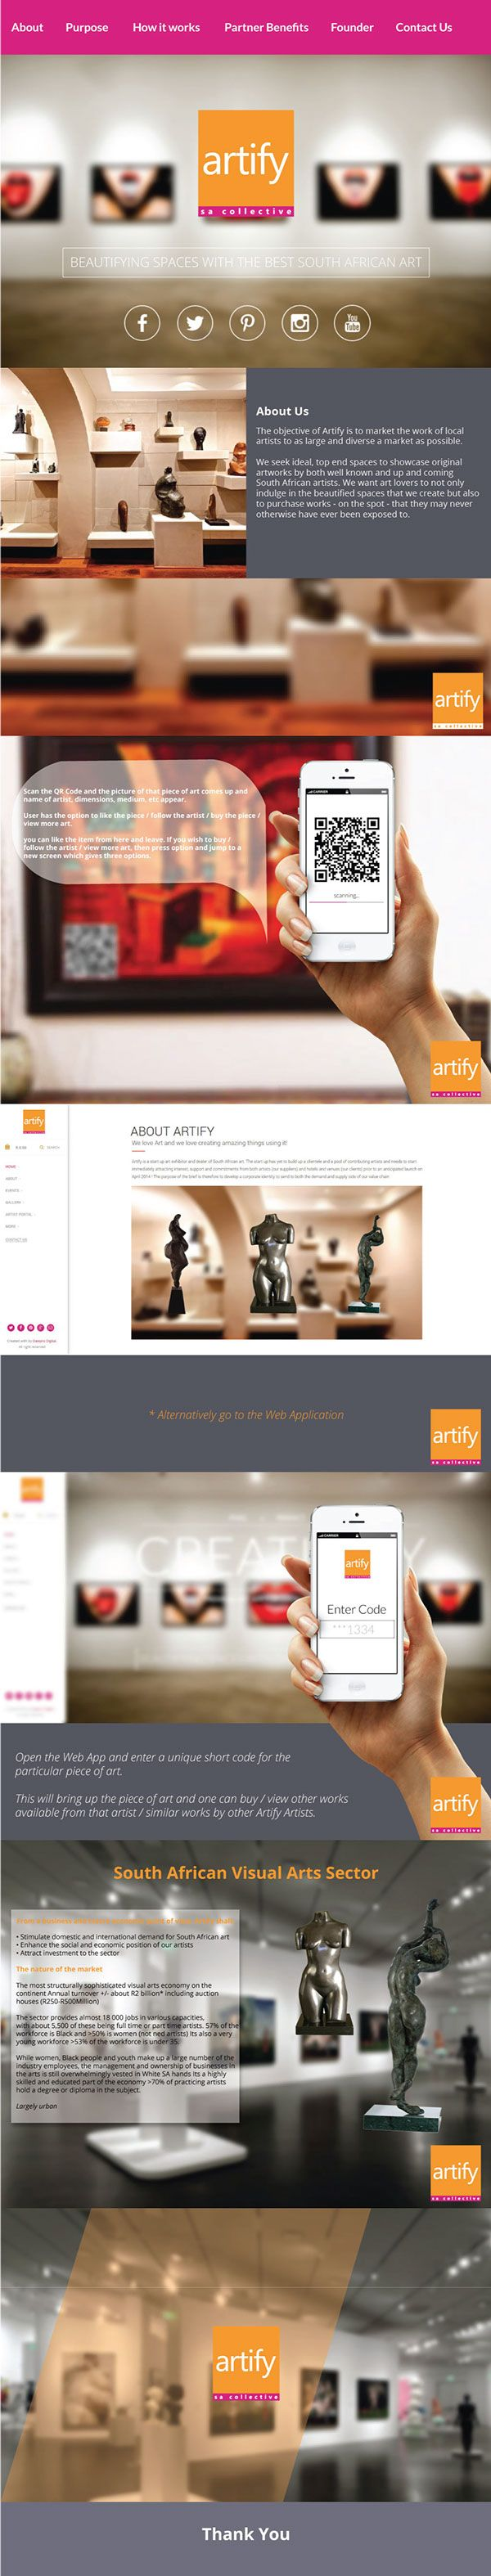 Artify SA Power Point Slides on Behance